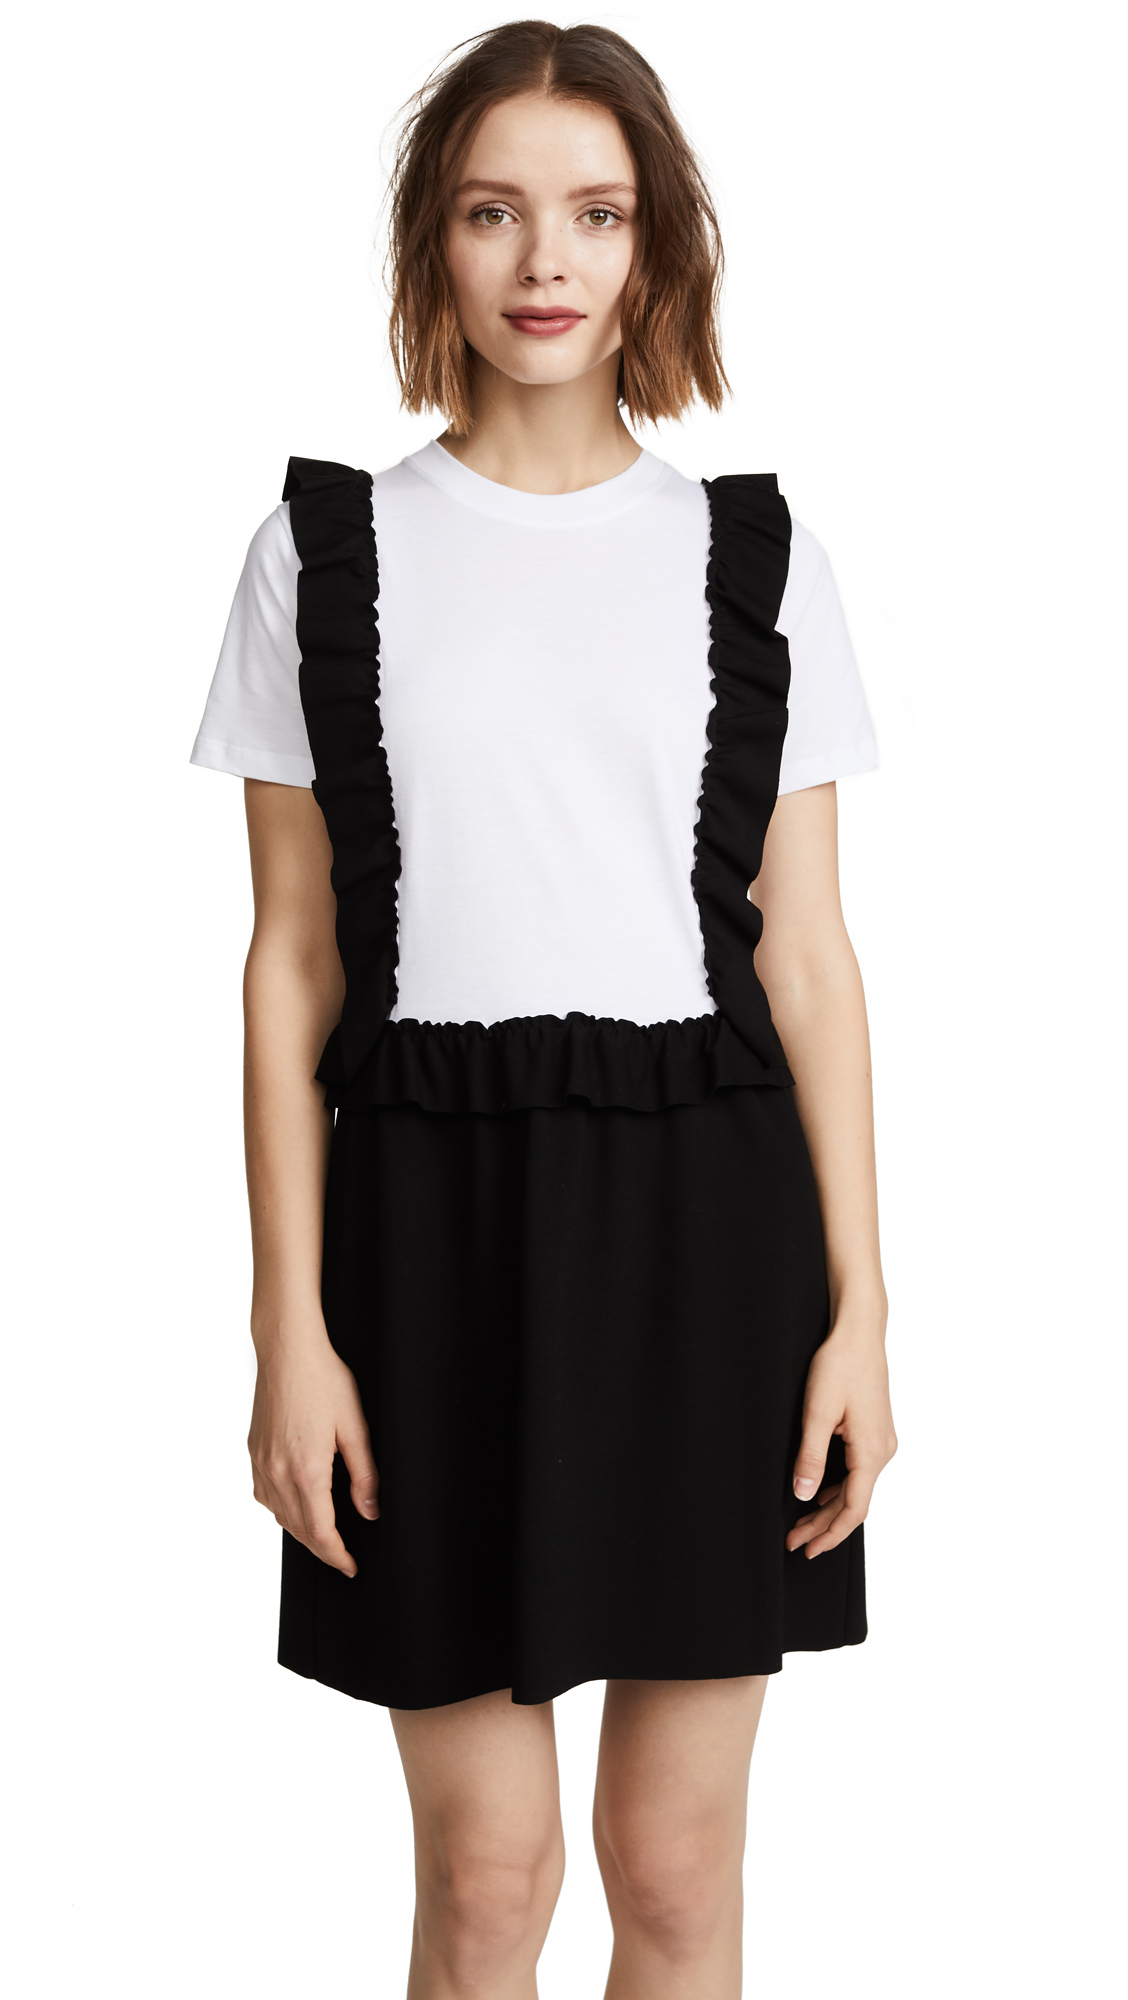 RED Valentino Pinafore Tee Dress - Bianco/Nero